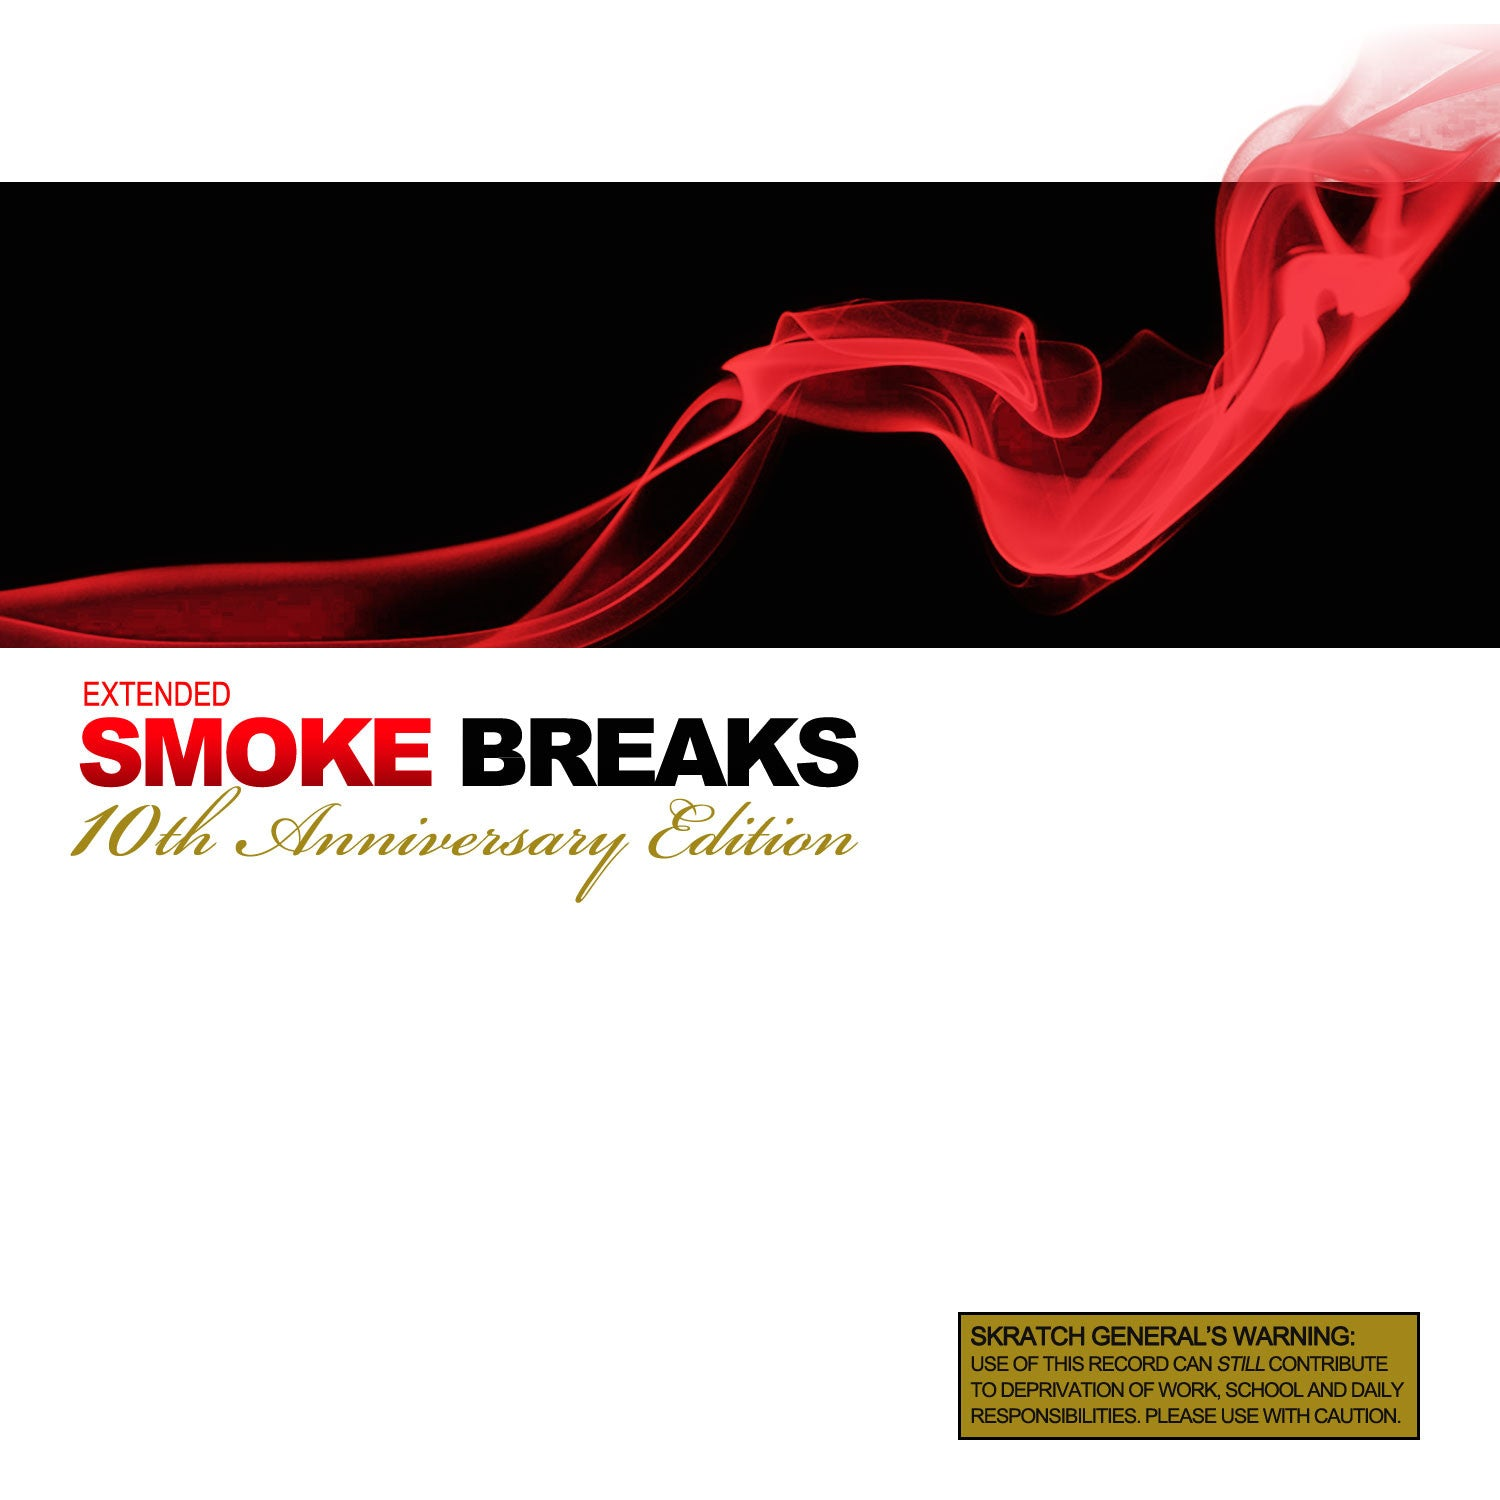 Extended Smoke Breaks: 10th Anniversary Edition - Thud Rumble